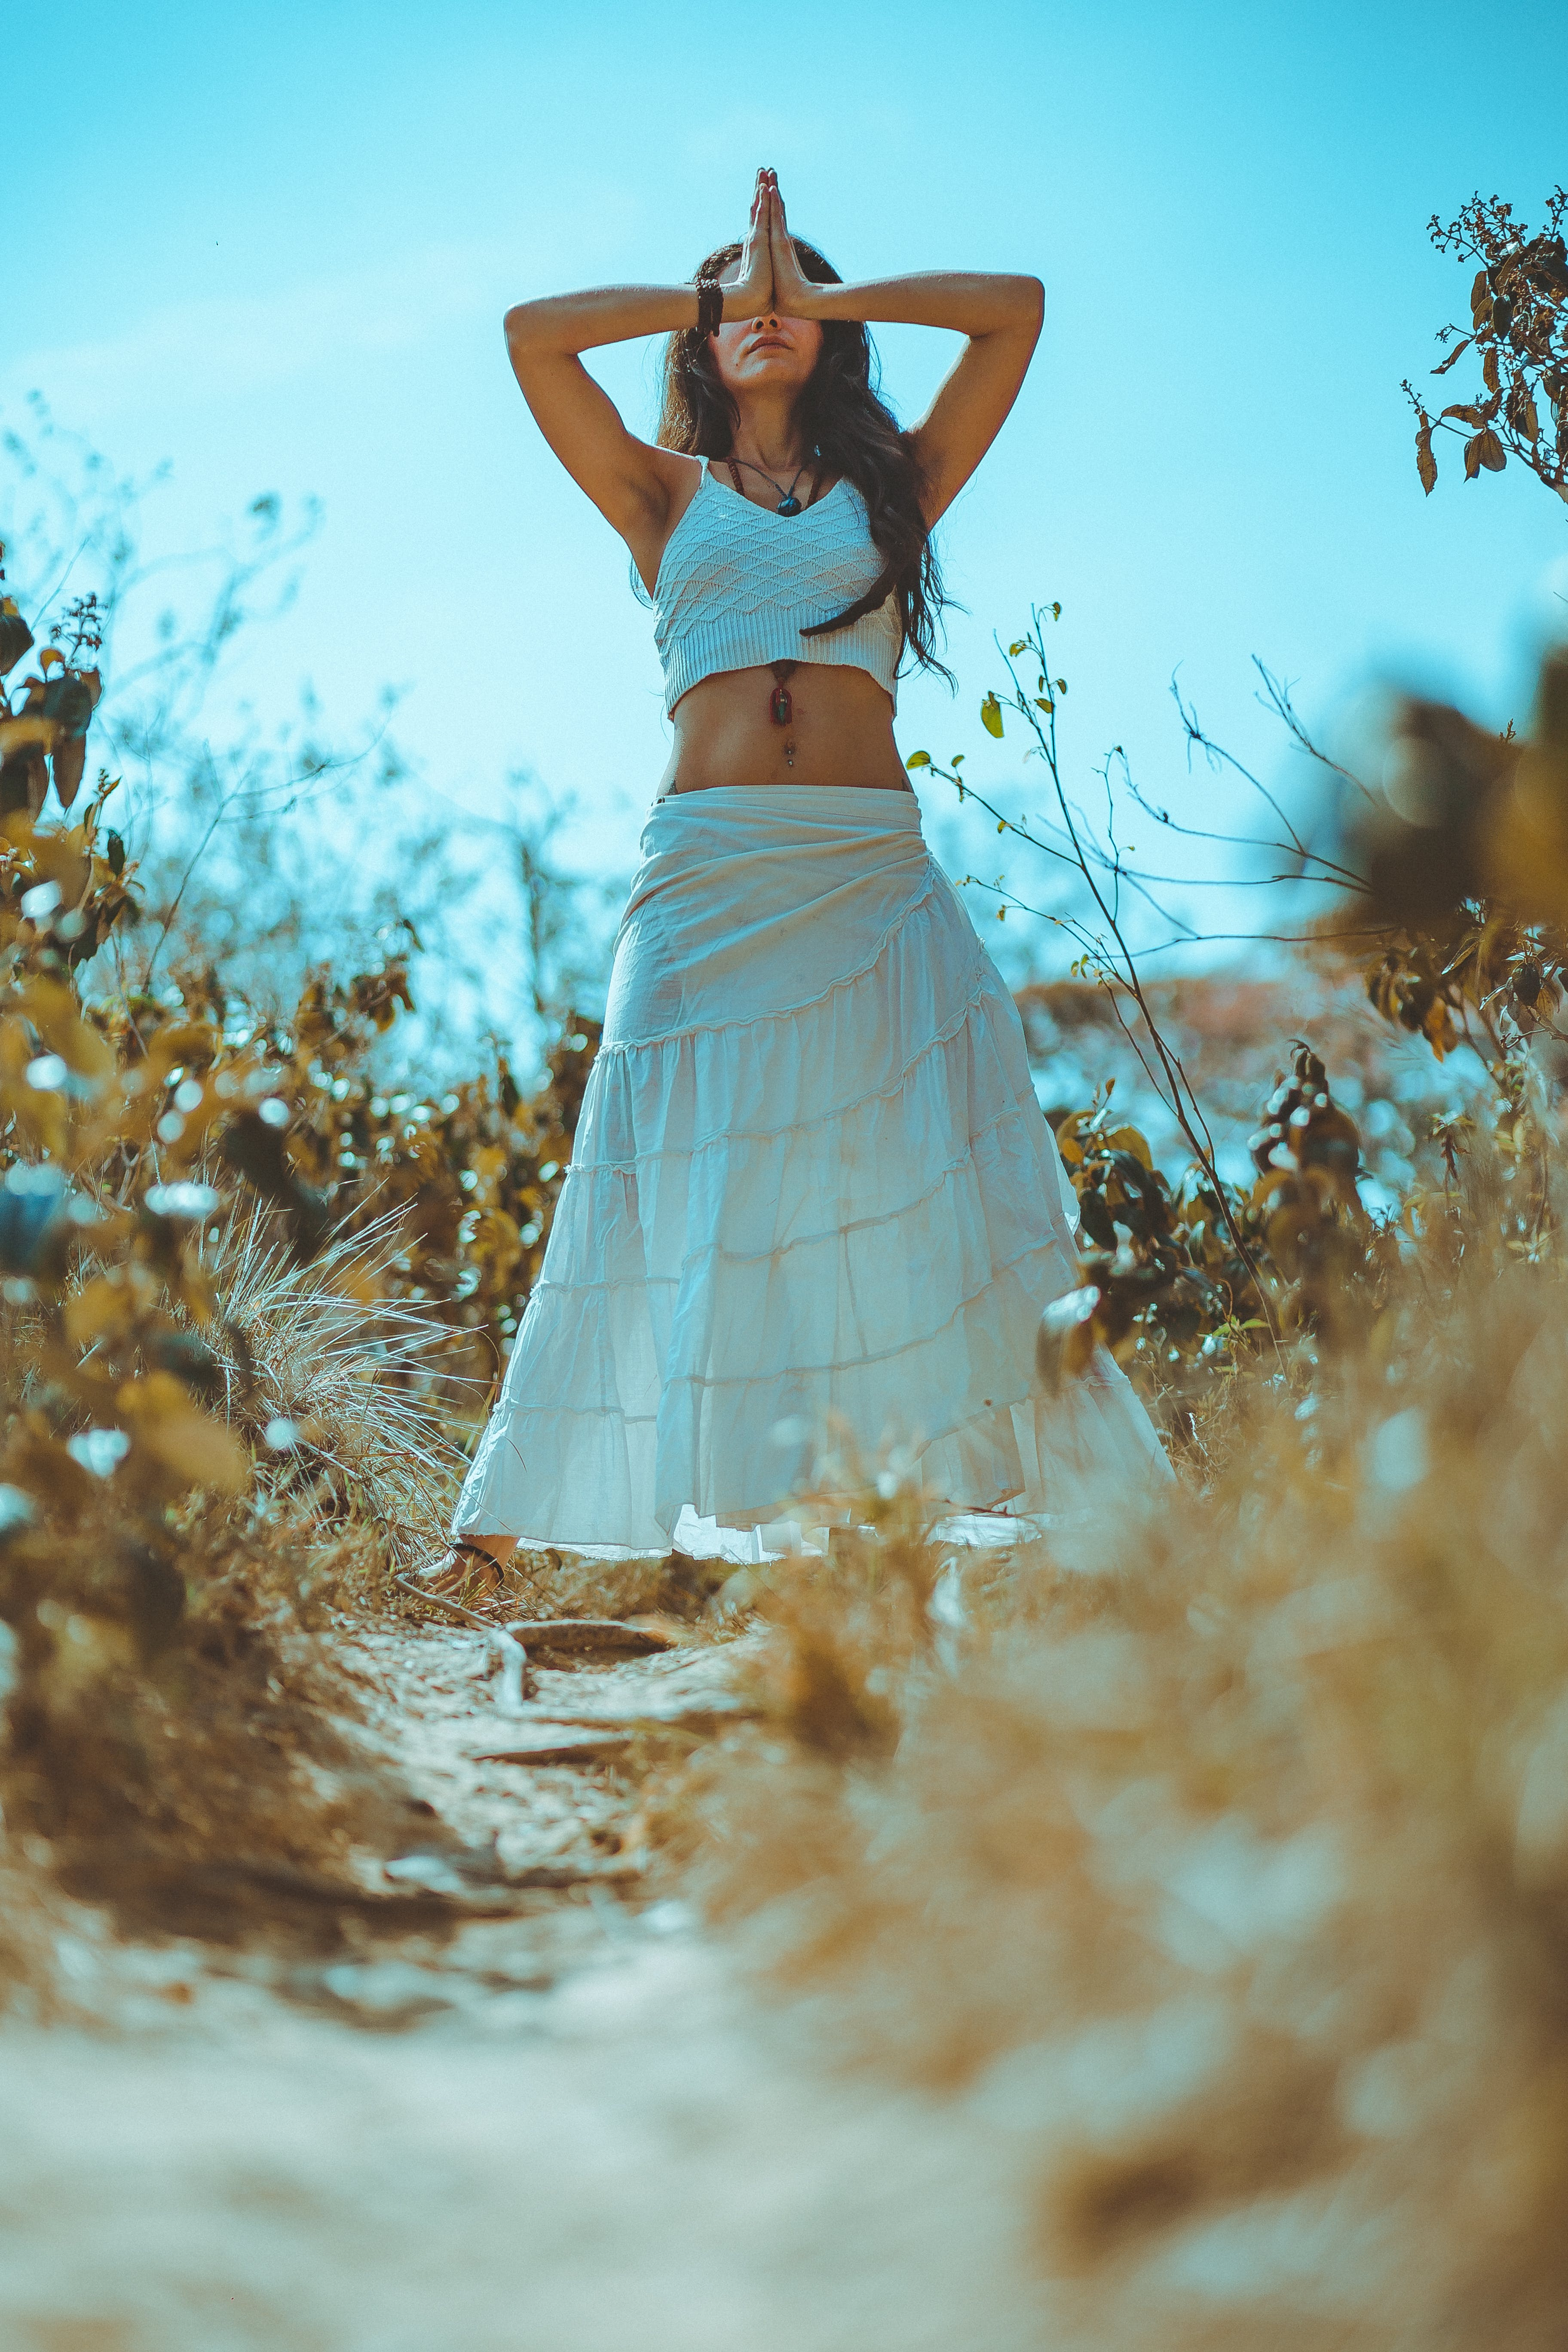 Woman in a White Top and Skirt